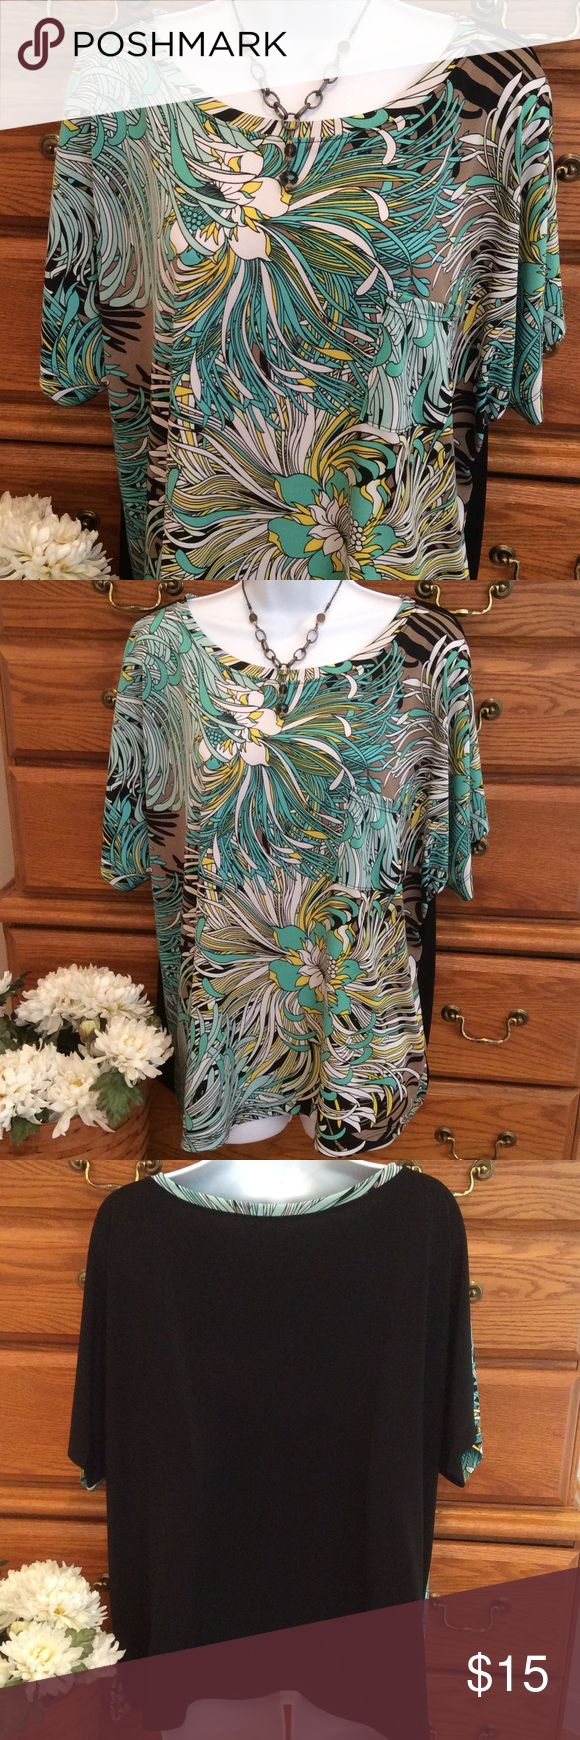 "Van Heusen Tropical Shirt . 95% polyester and 5% spandex.  Very good condition.  Feels like a liquid knit and really doesn't wrinkle. 👍 Approximately 26"" in length and when measured laid flat from armpit to armpit it is 25"" across.  Has stretch.  Kind of a little batwing style, bigger fit.  Colors are a solid black back with a green, white and yellow tropical pattern in the front of the top only.  Has a real pocket in the front too. Made in the USA. Van Heusen Tops Blouses"